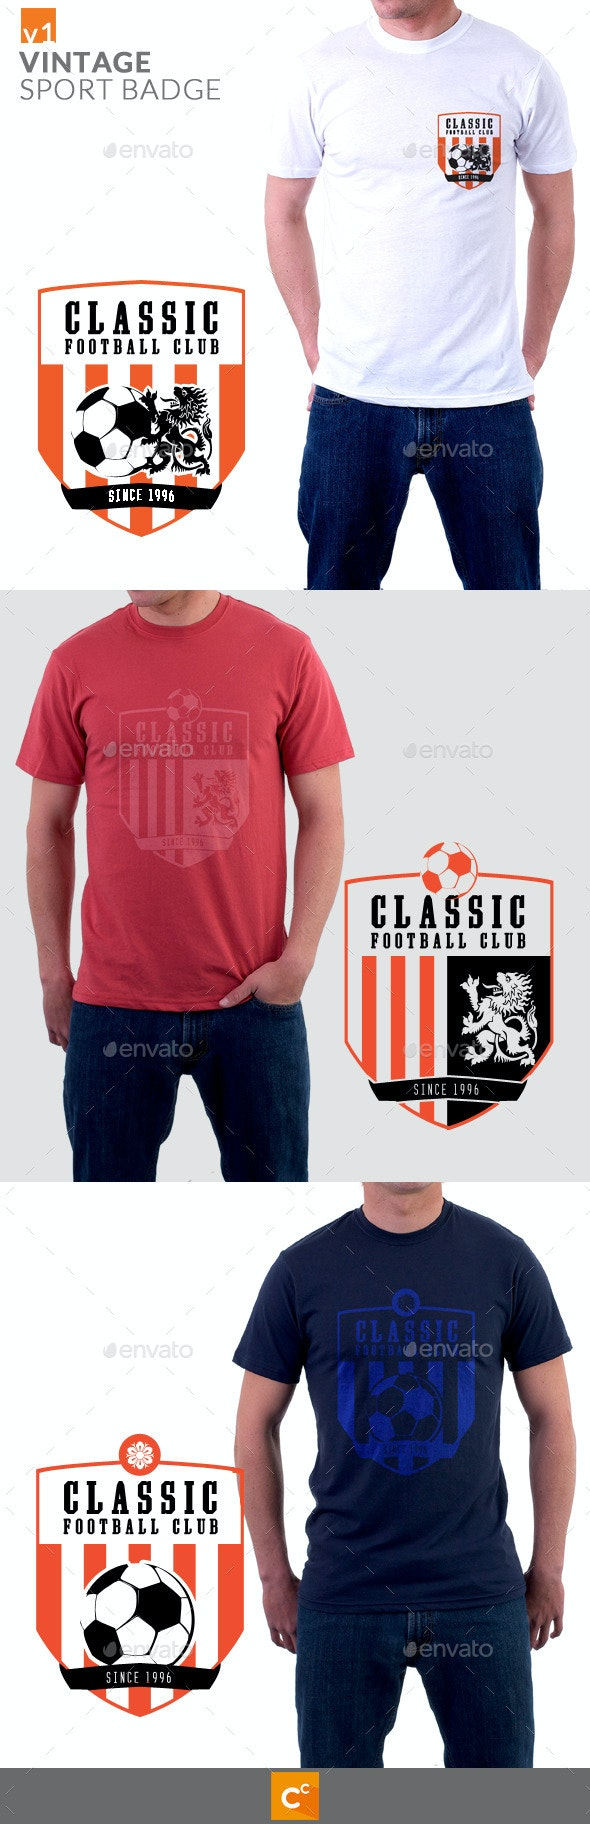 Vintage Sport Badge T-shirt - Sports & Teams T-Shirts